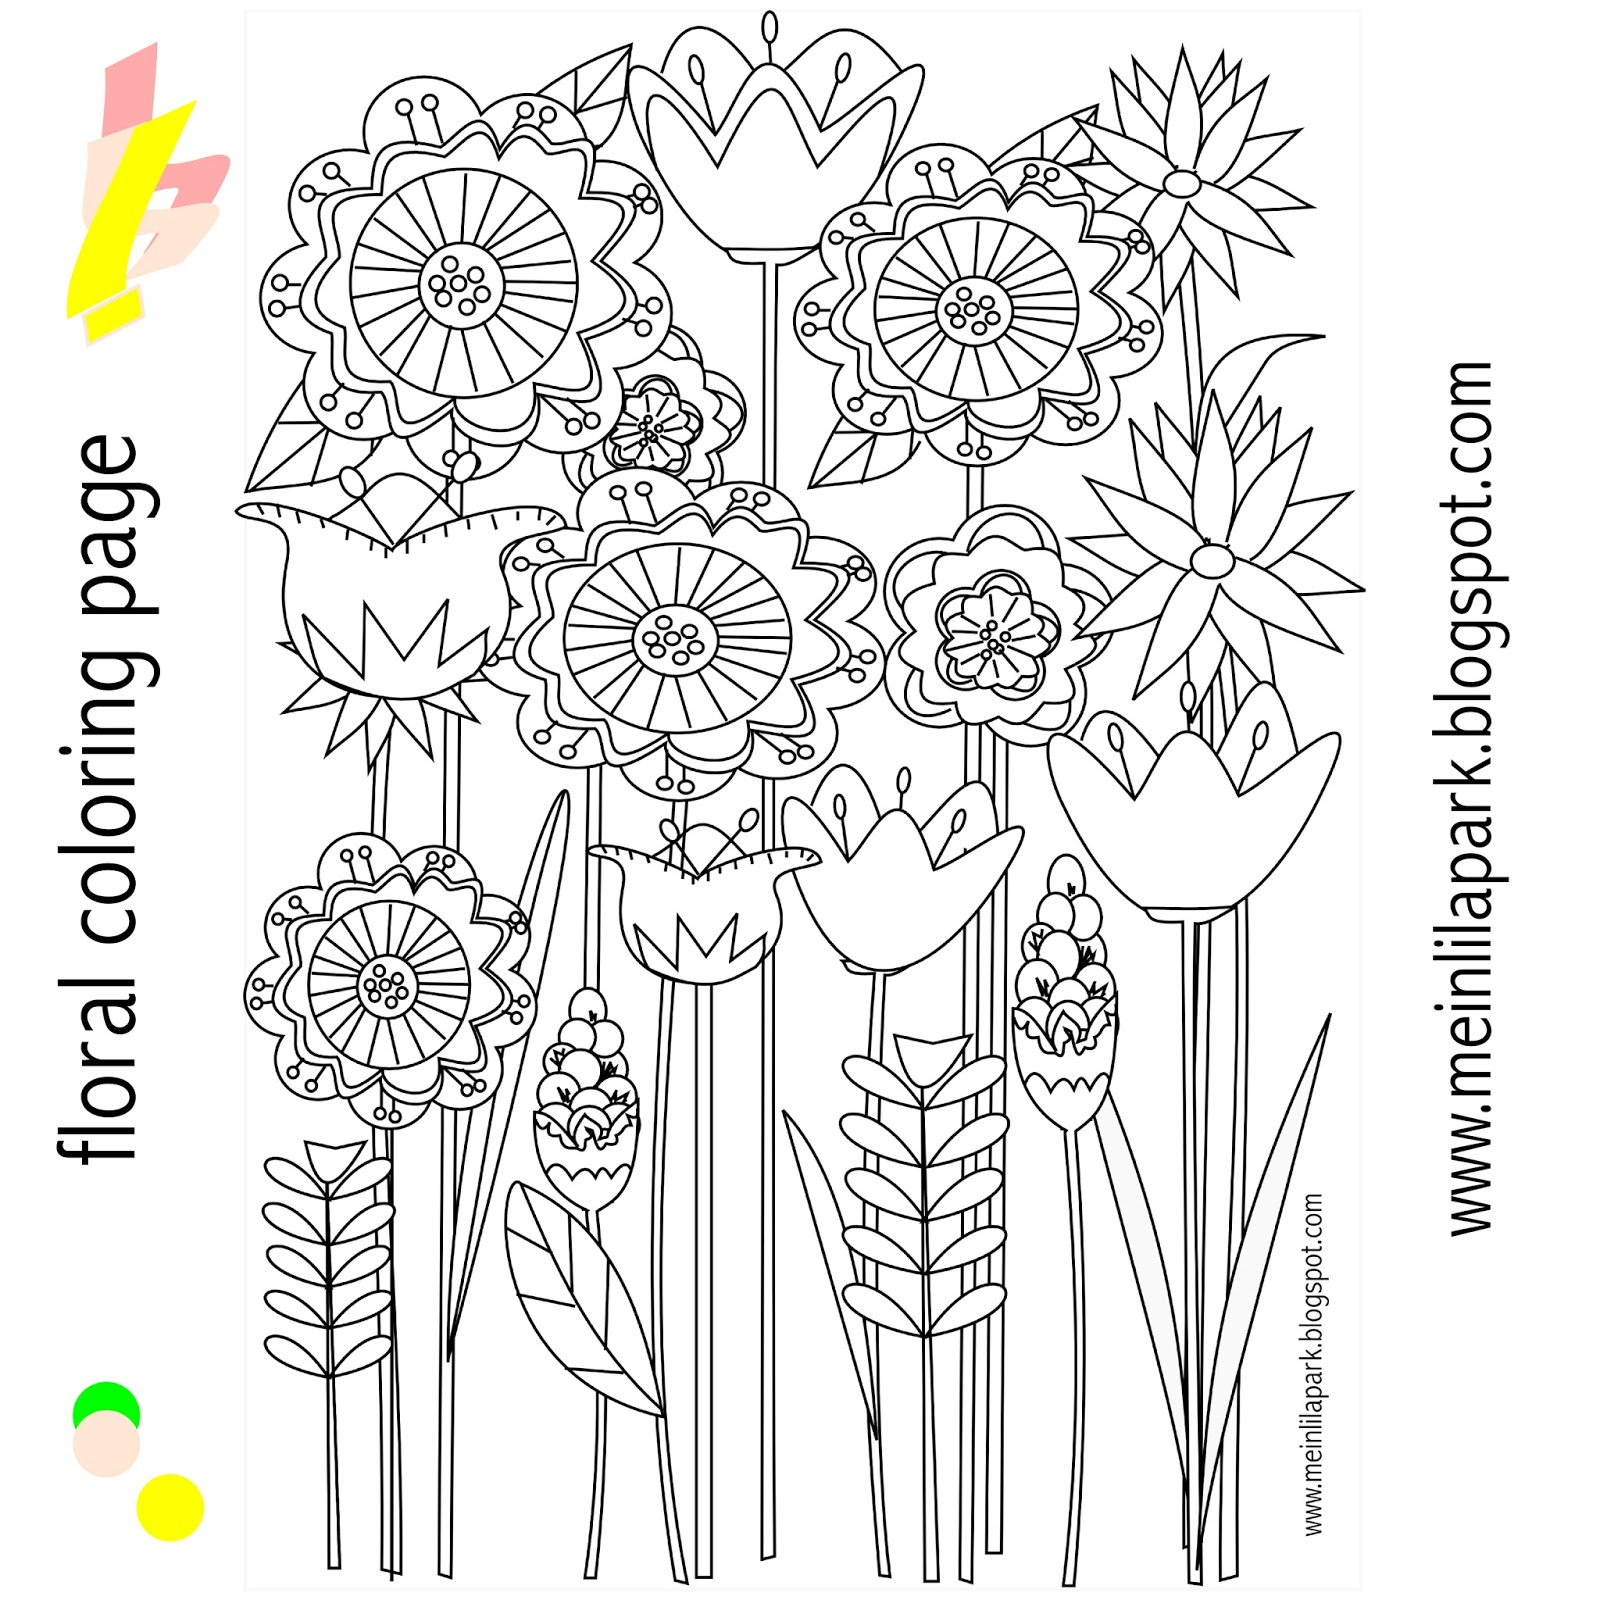 Free coloring pages august - Free Printable Floral Coloring Page Ausdruckbare Malseite Freebie